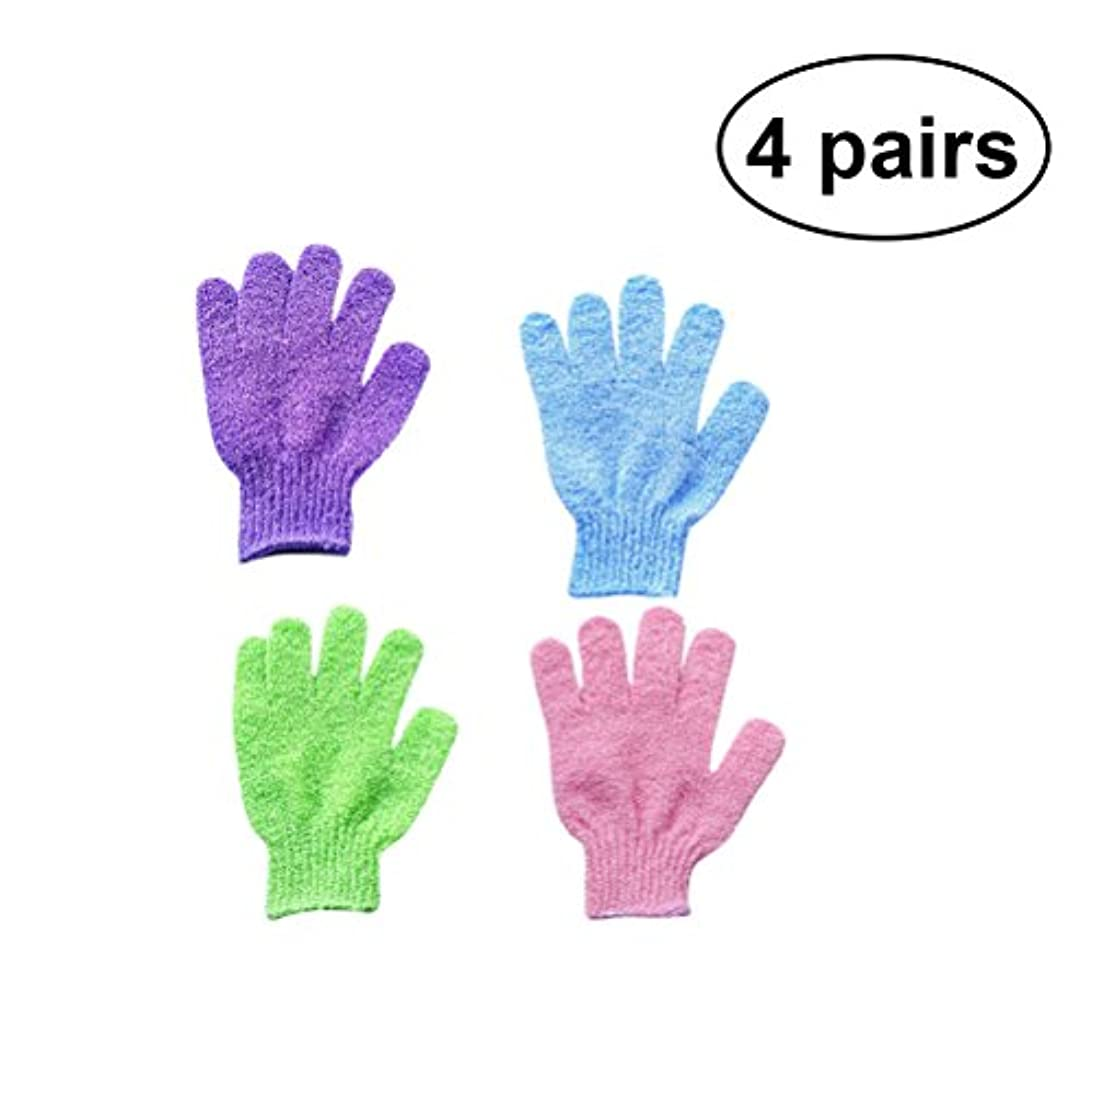 品フルート普通のHealifty 4 Pairs Exfoliating Bath Gloves Shower Mitts Exfoliating Body Spa Massage Dead Skin Cell Remover